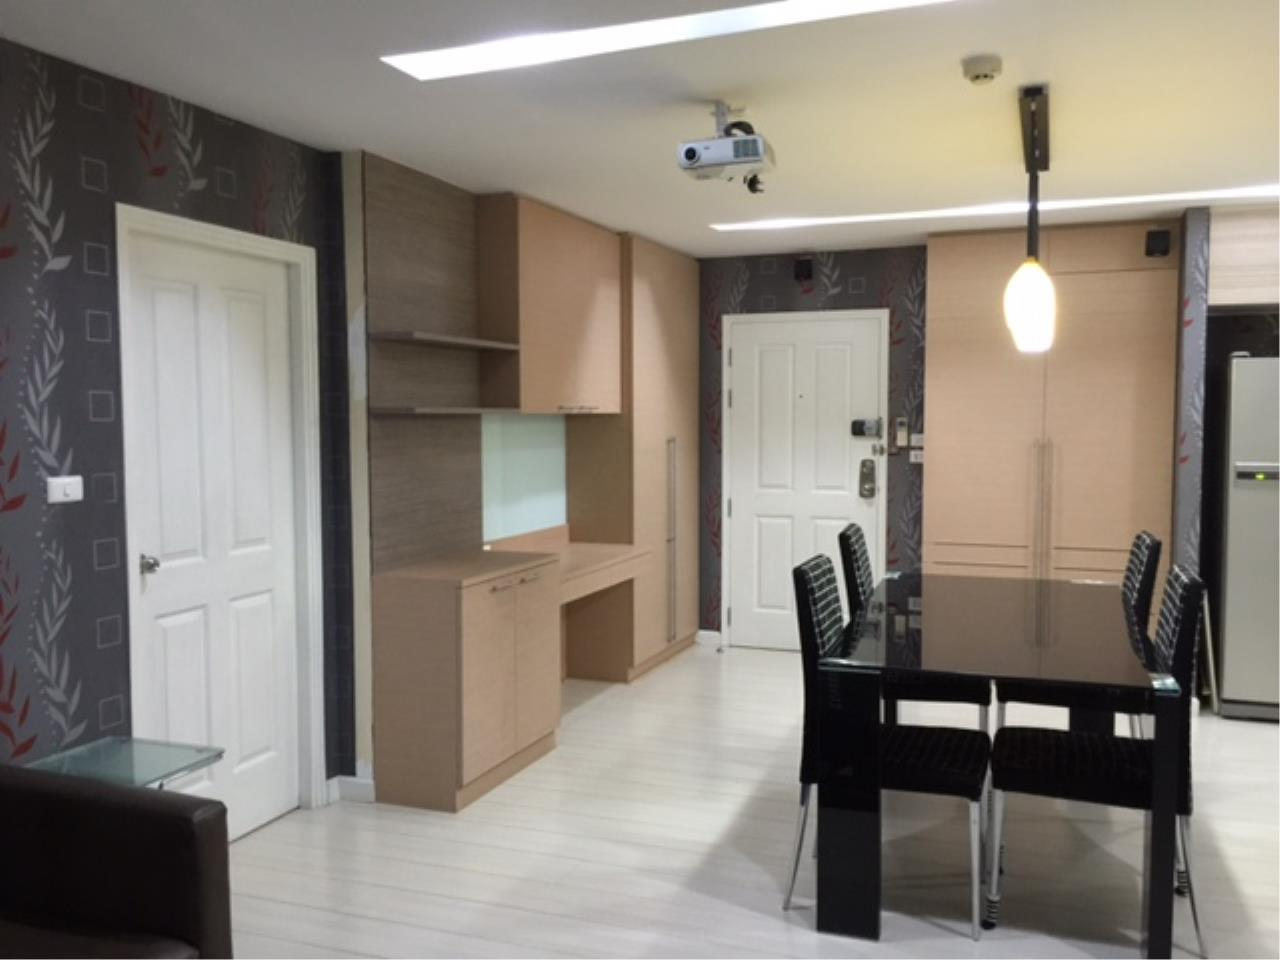 Piri Property Agency's 2 bedrooms Condominium  on 8 (Phase1) floor For Rent 2 7